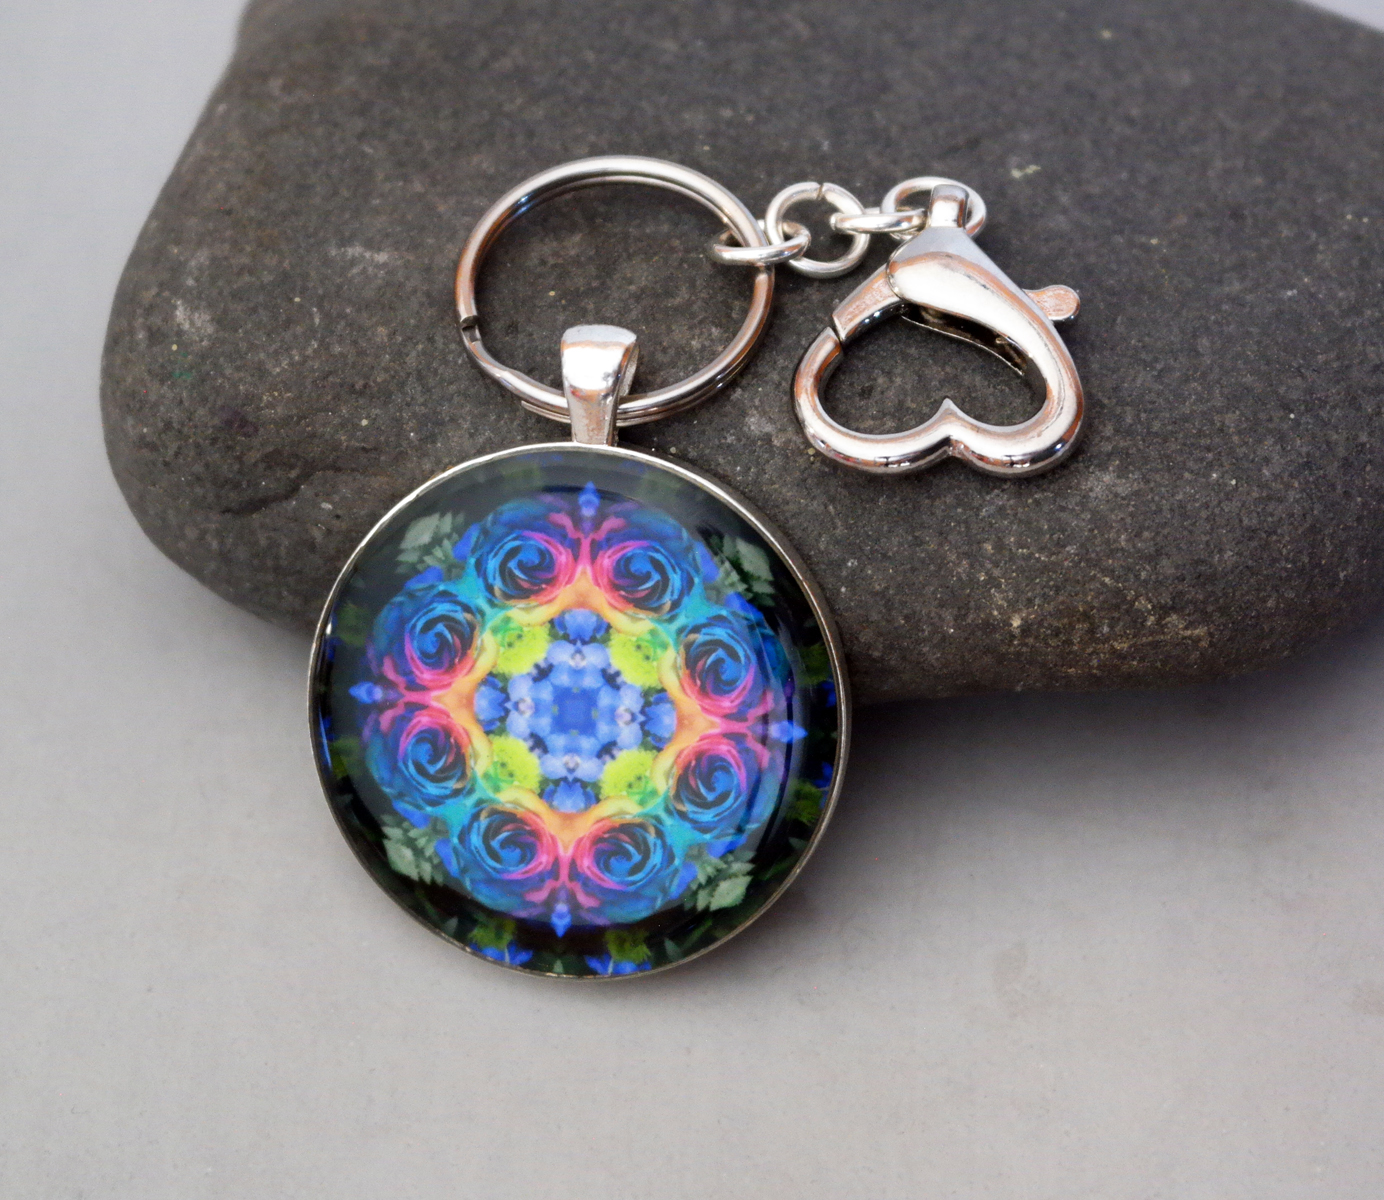 Rose Chakra Purse Charm Keychain Zen Boho Chic Mandala New Age Sacred Geometry Hippie Kaleidoscope Unique Gift For Her The Spectrum Of An Open Heart